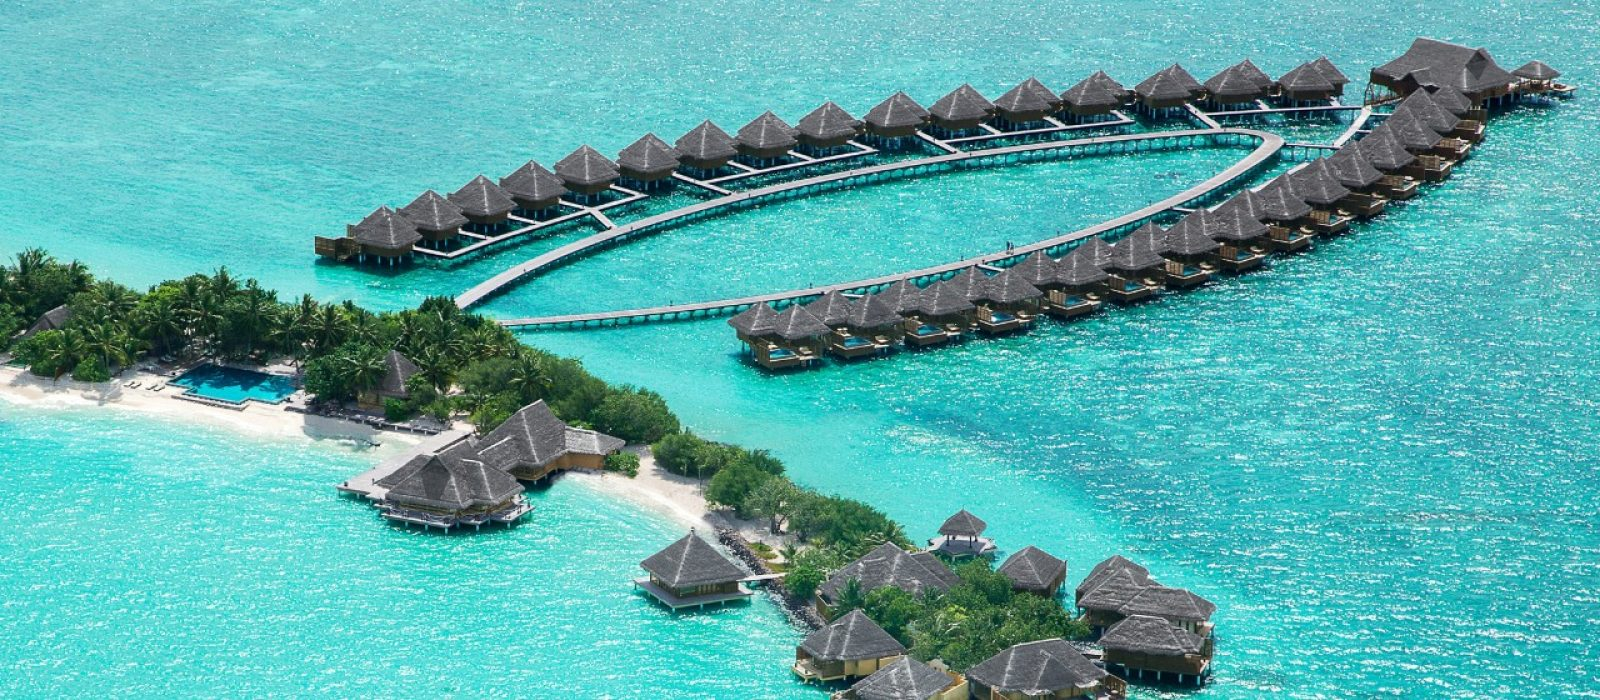 5 Exciting Things to do in the Maldives   Taj Exotica Resort & Spa